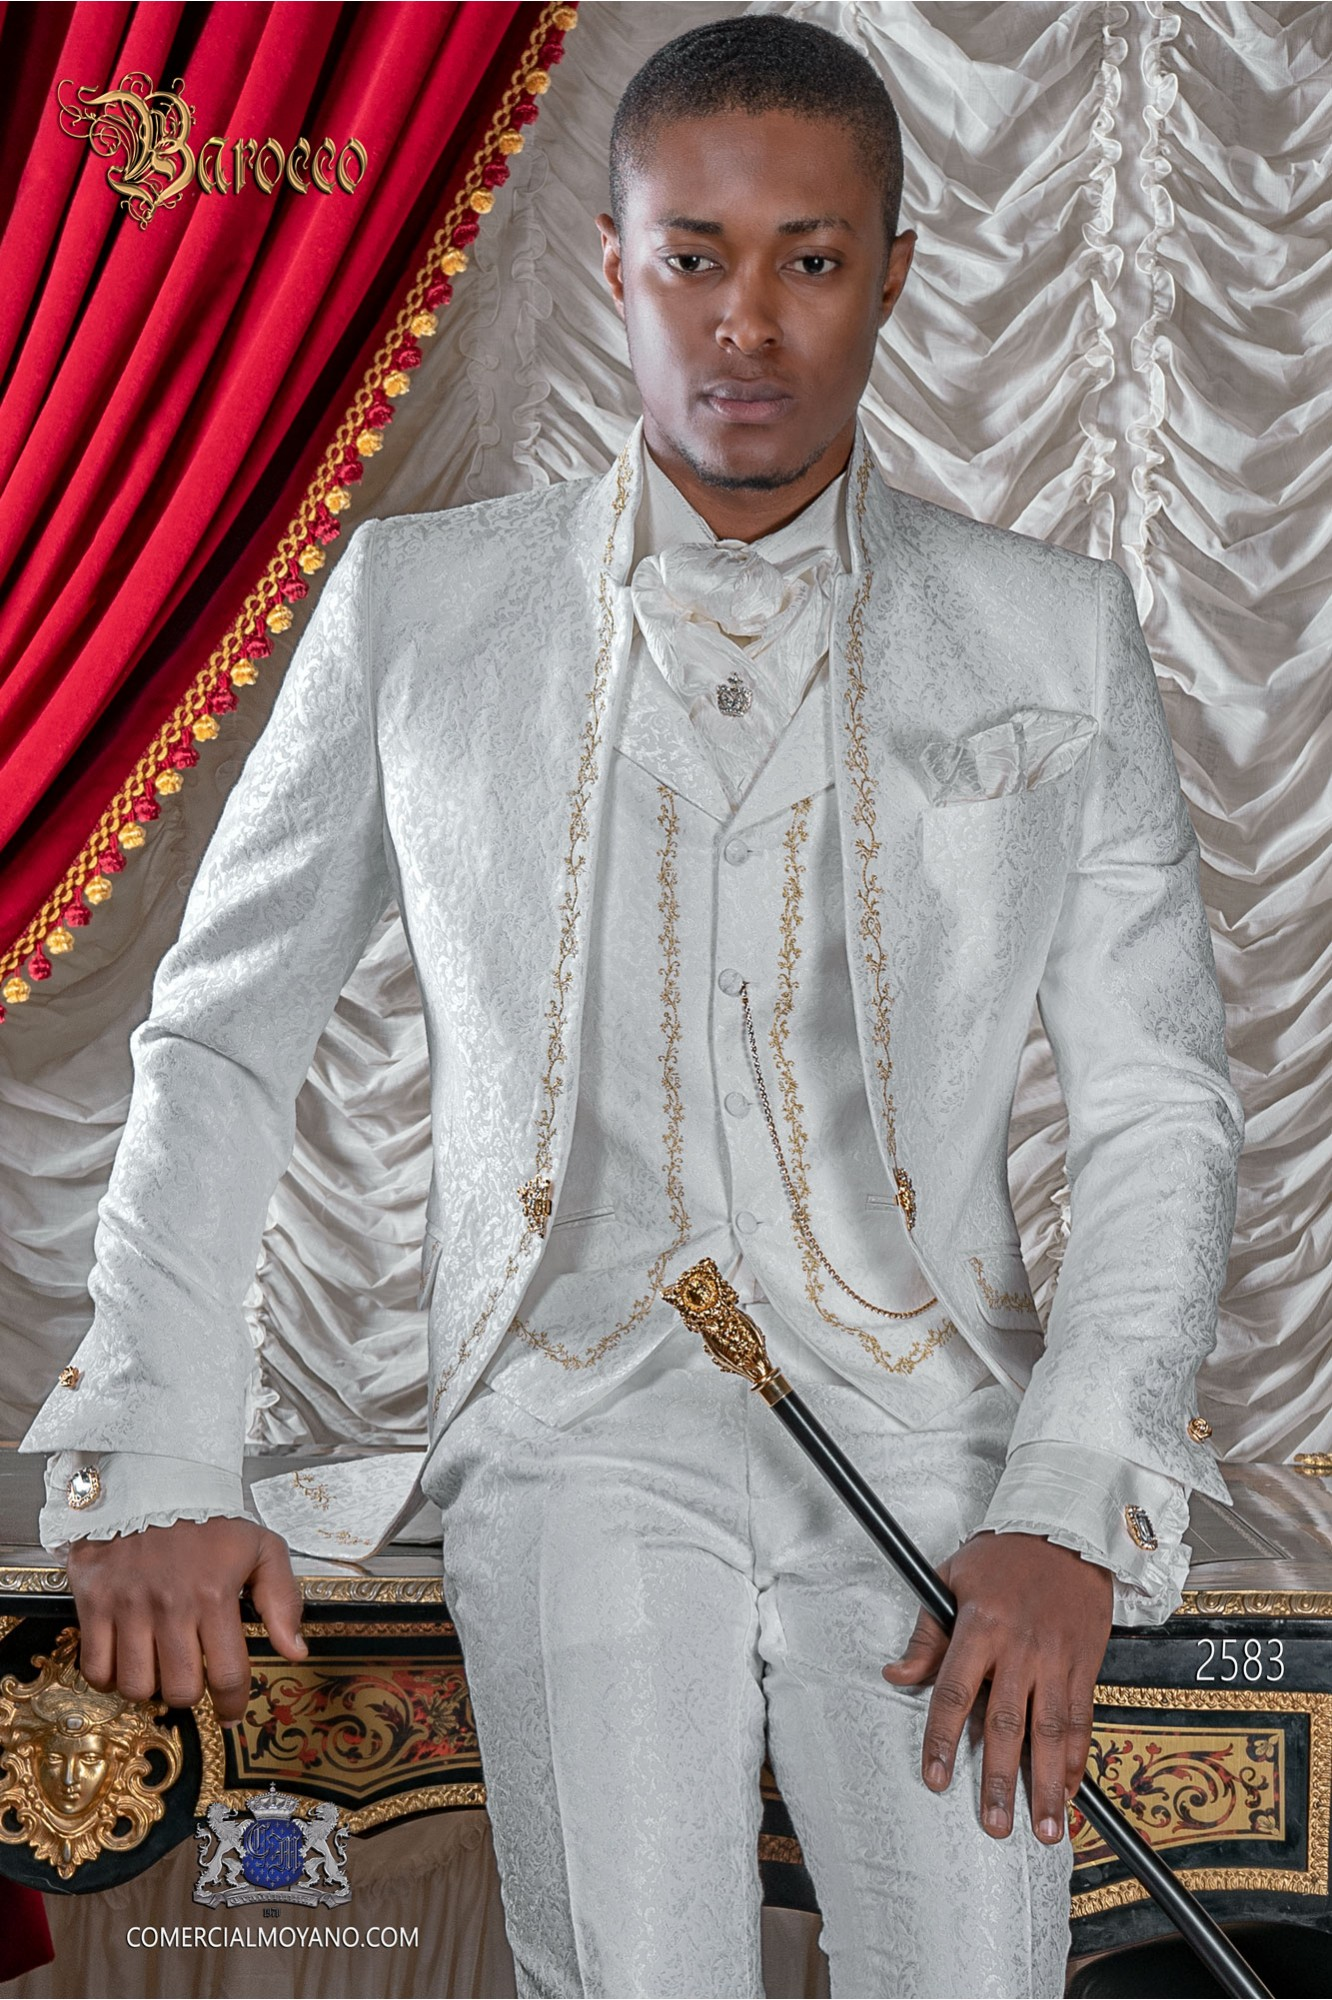 Baroque groom suit, vintage mao collar frock coat in white jacquard fabric with golden embroidery